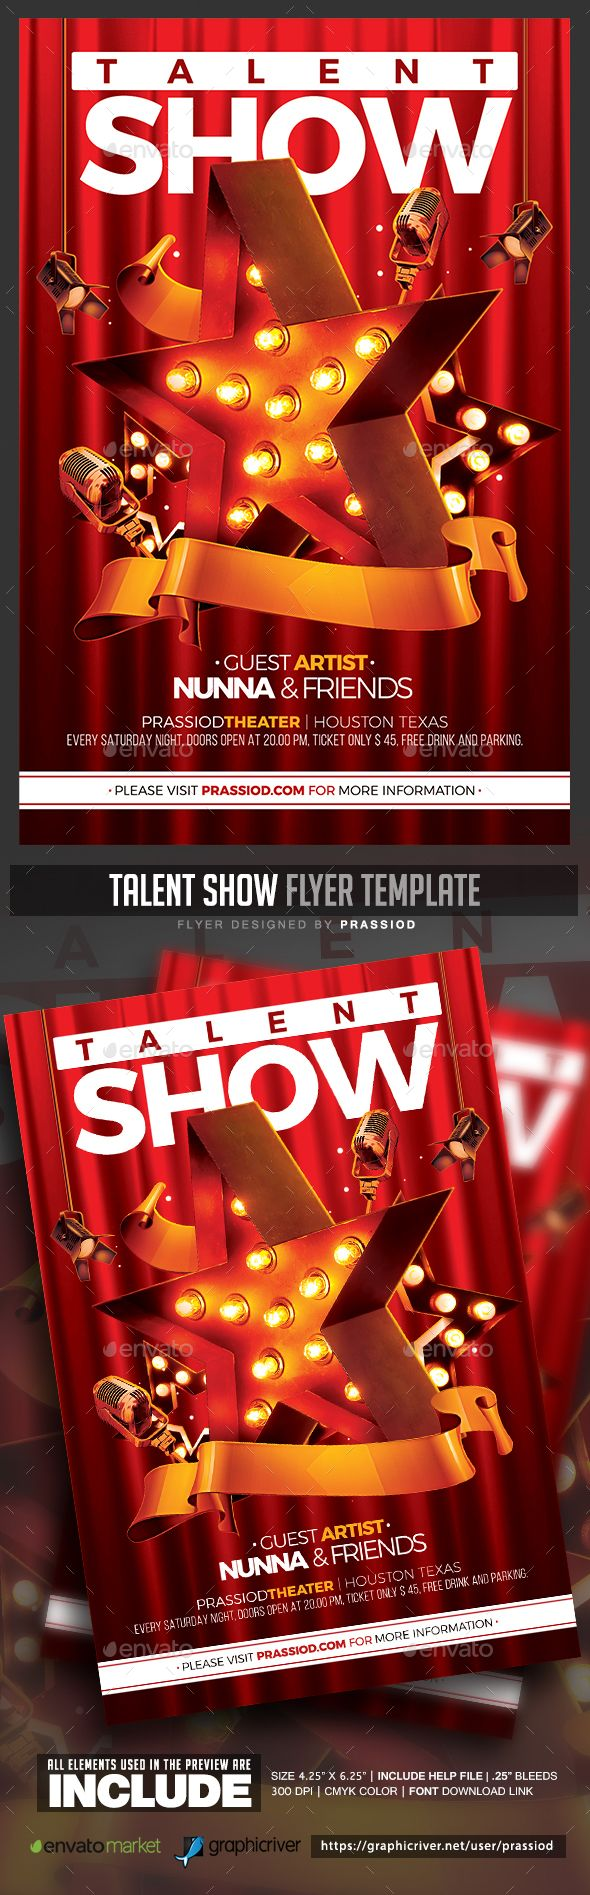 Talent Show #Flyer Template - Clubs & Parties Events Download here: https://graphicriver.net/item/talent-show-flyer-template/19748138?ref=alena994